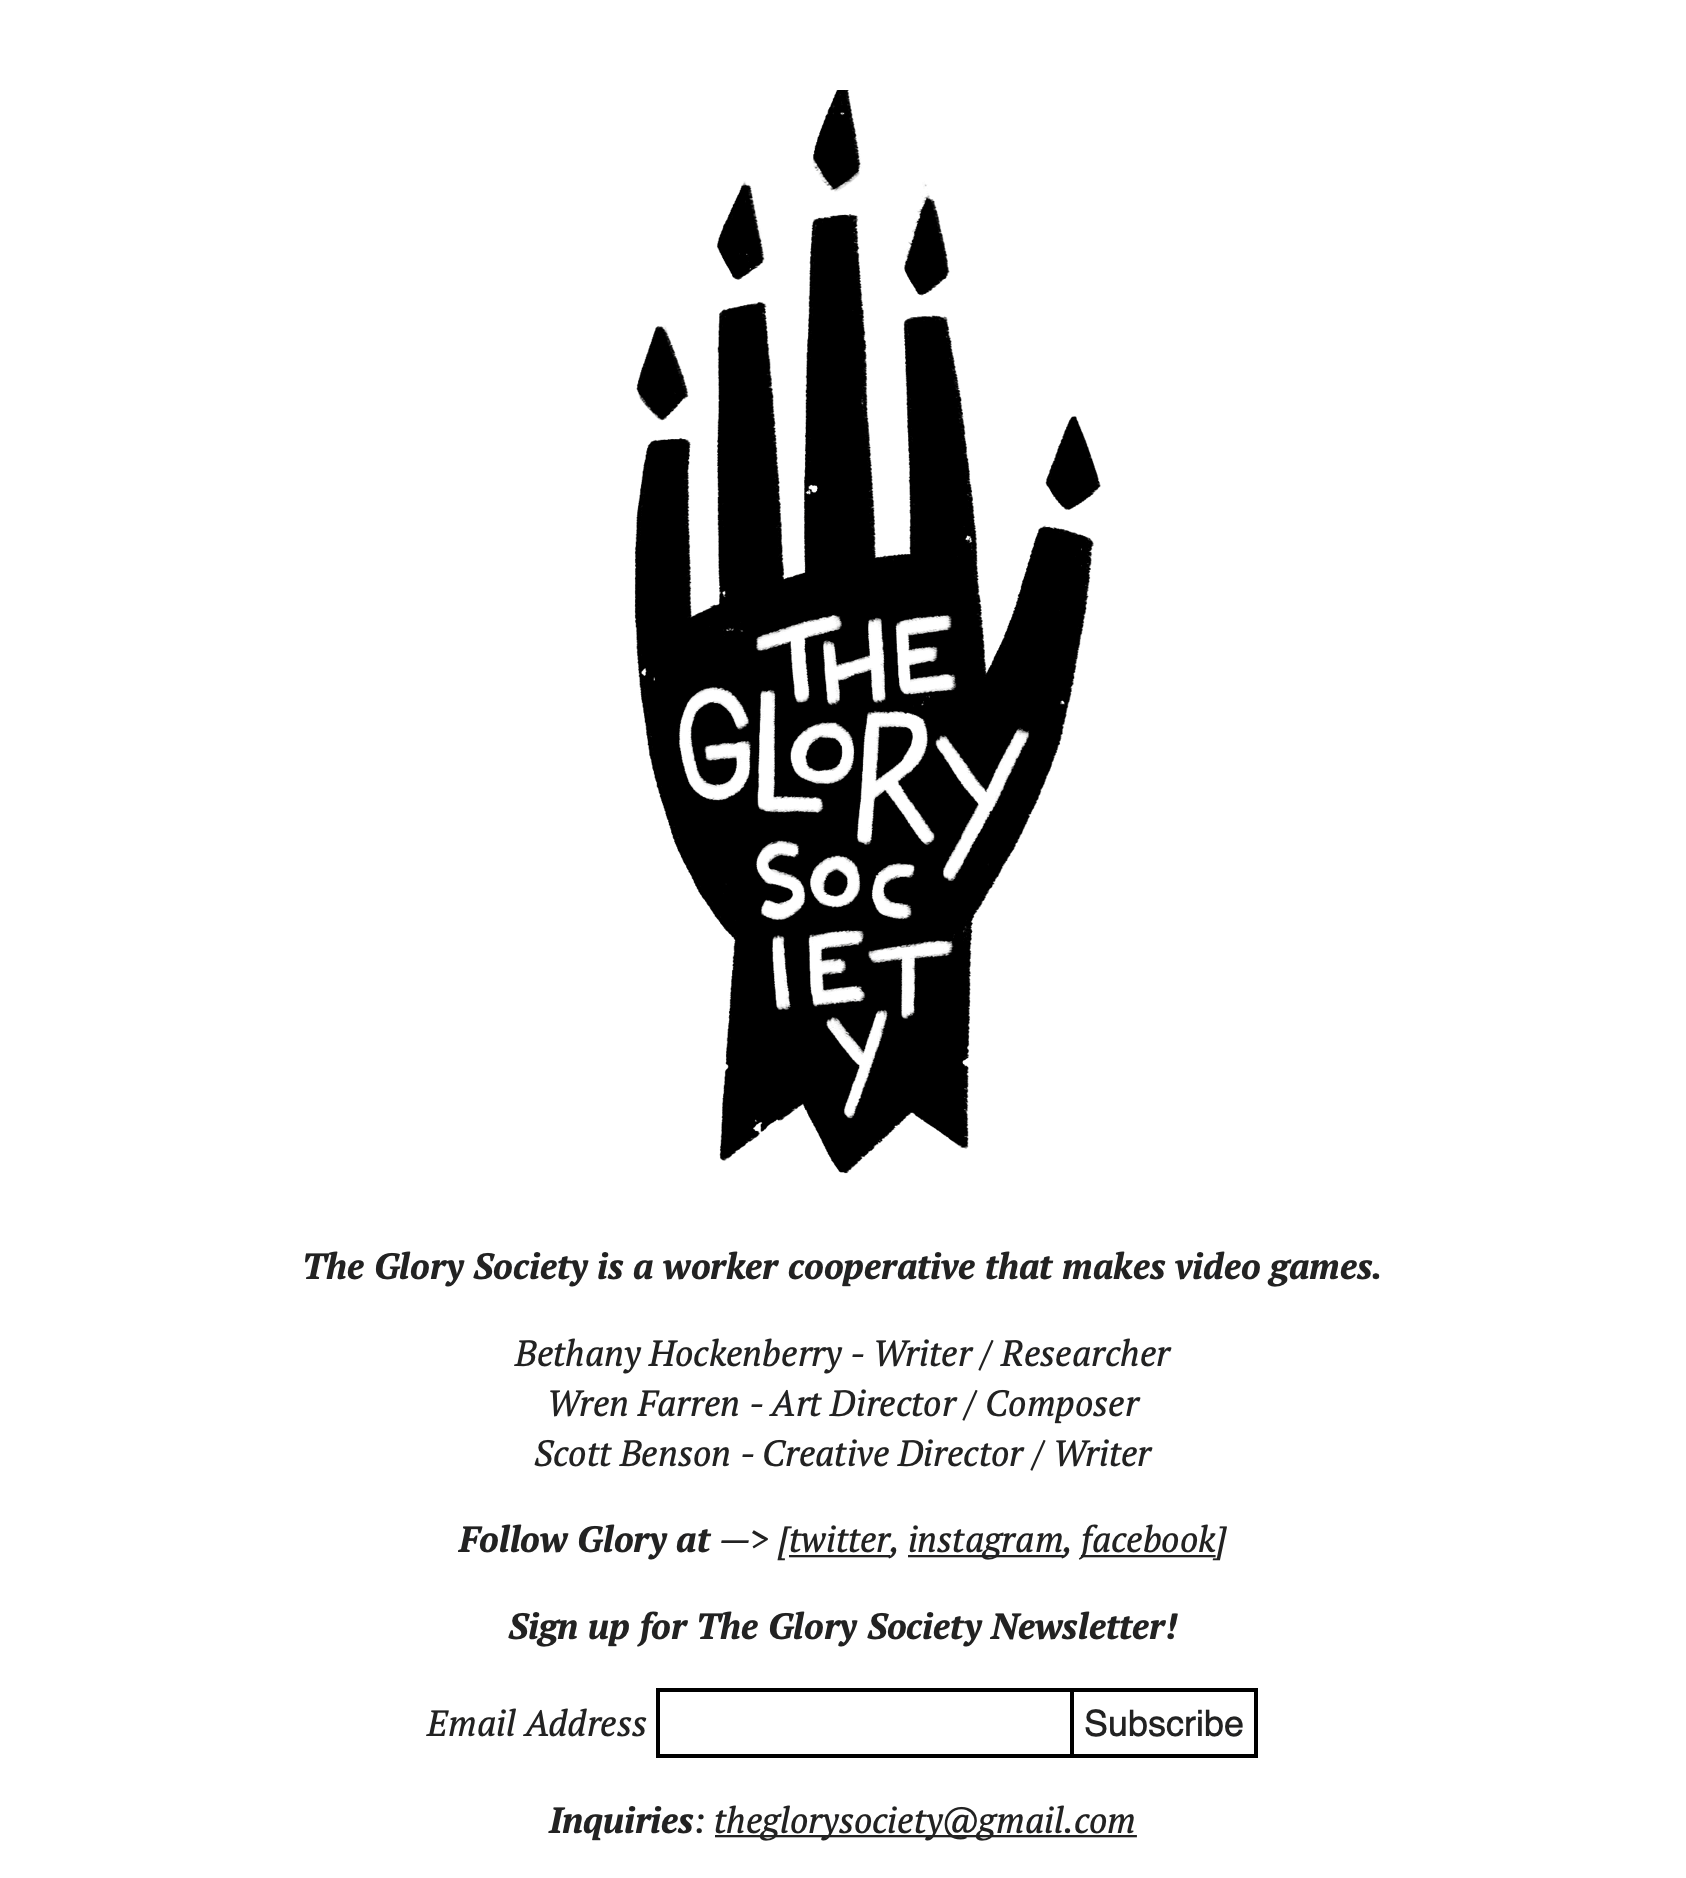 a screenshot of the The Glory Society website